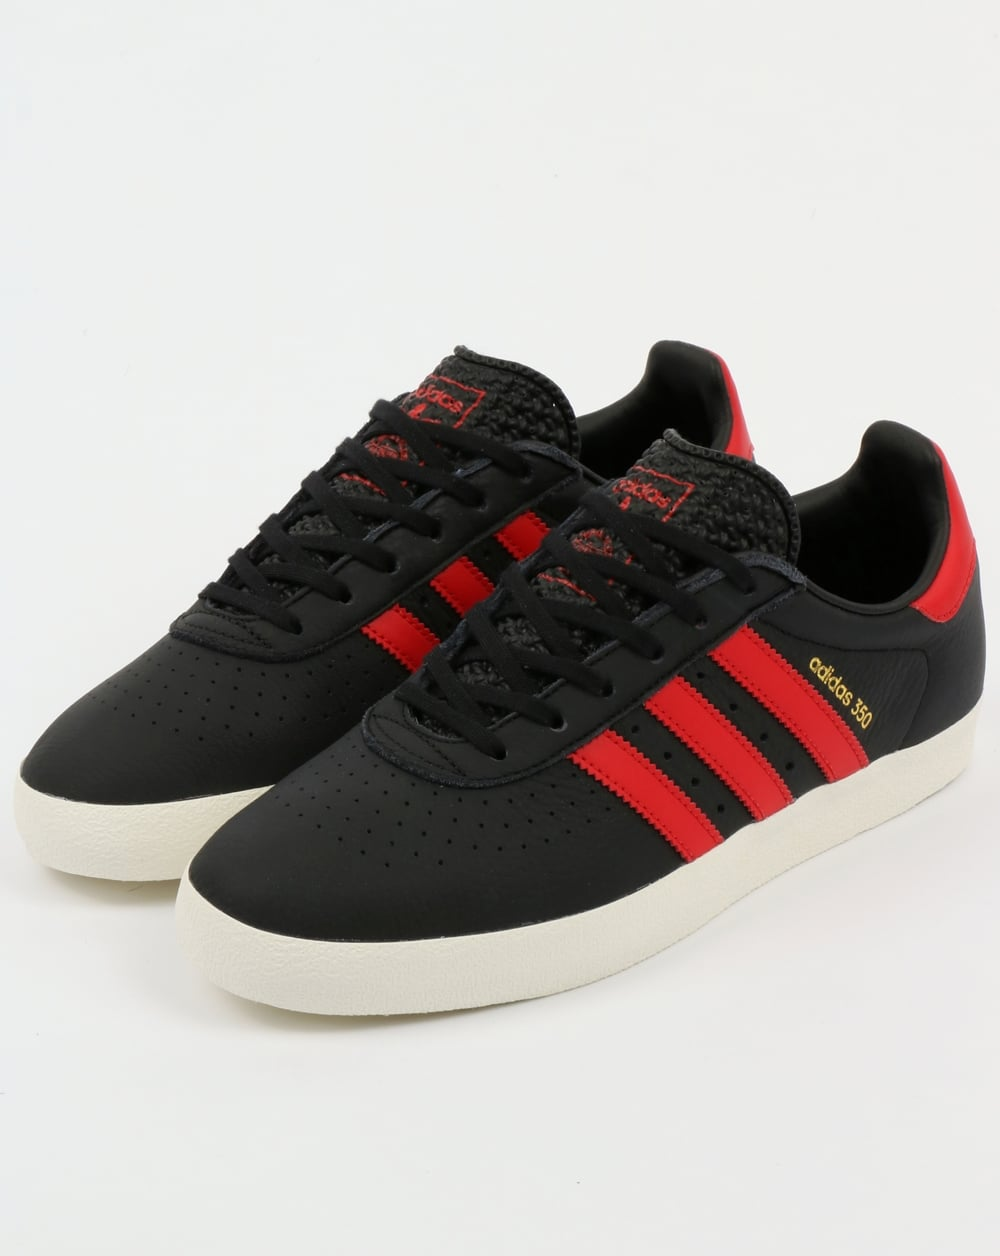 5cb1f1d9c314 red and black adidas trainers